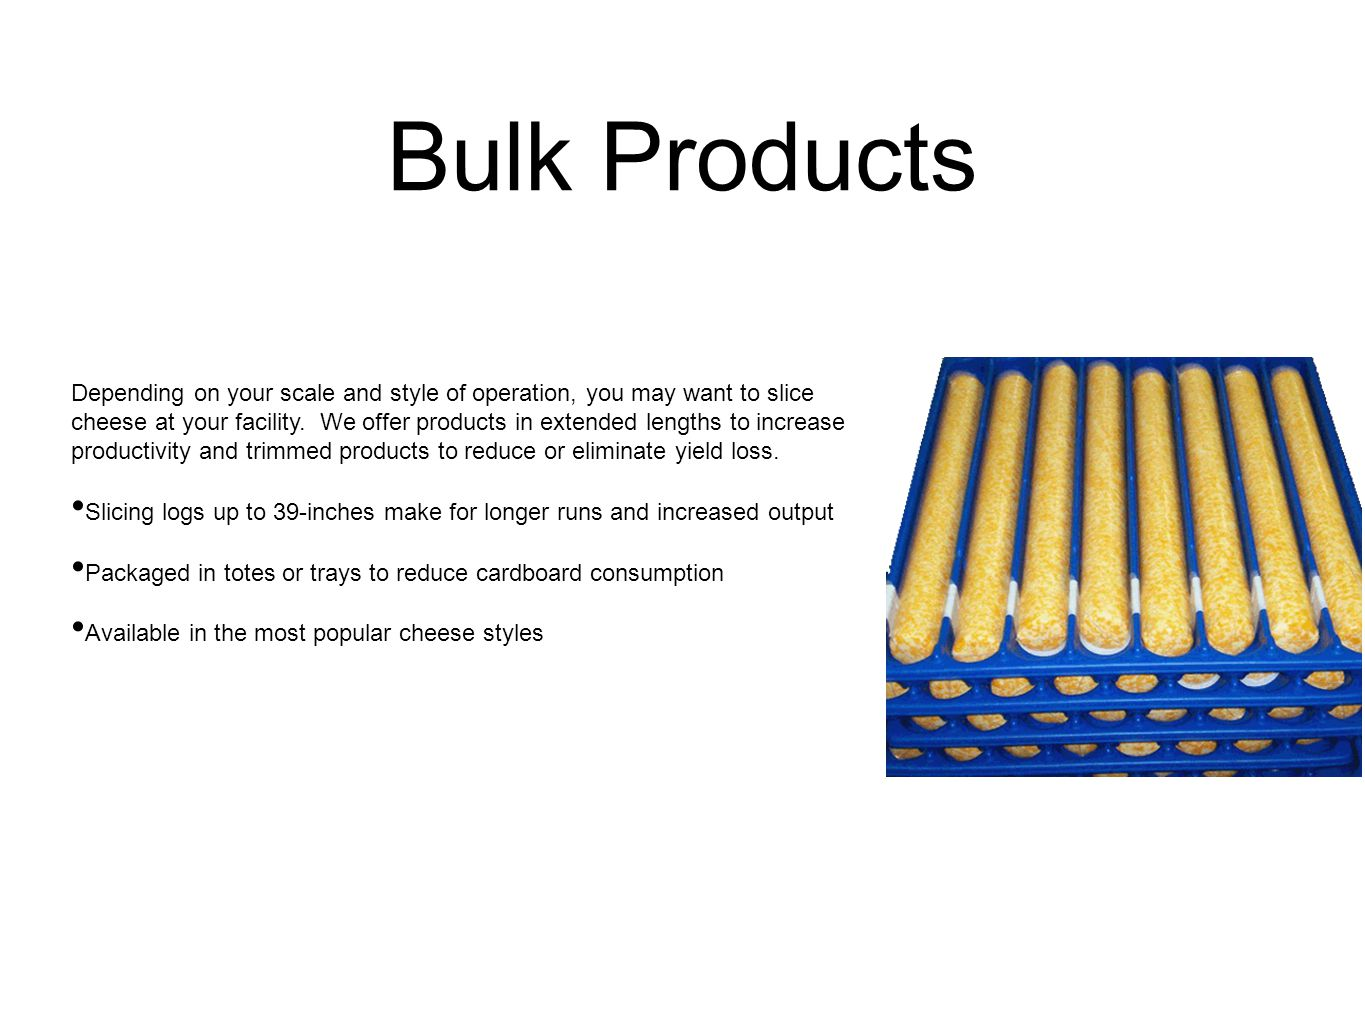 Bulk Products Depending on your scale and style of operation, you may want to slice cheese at your facility.